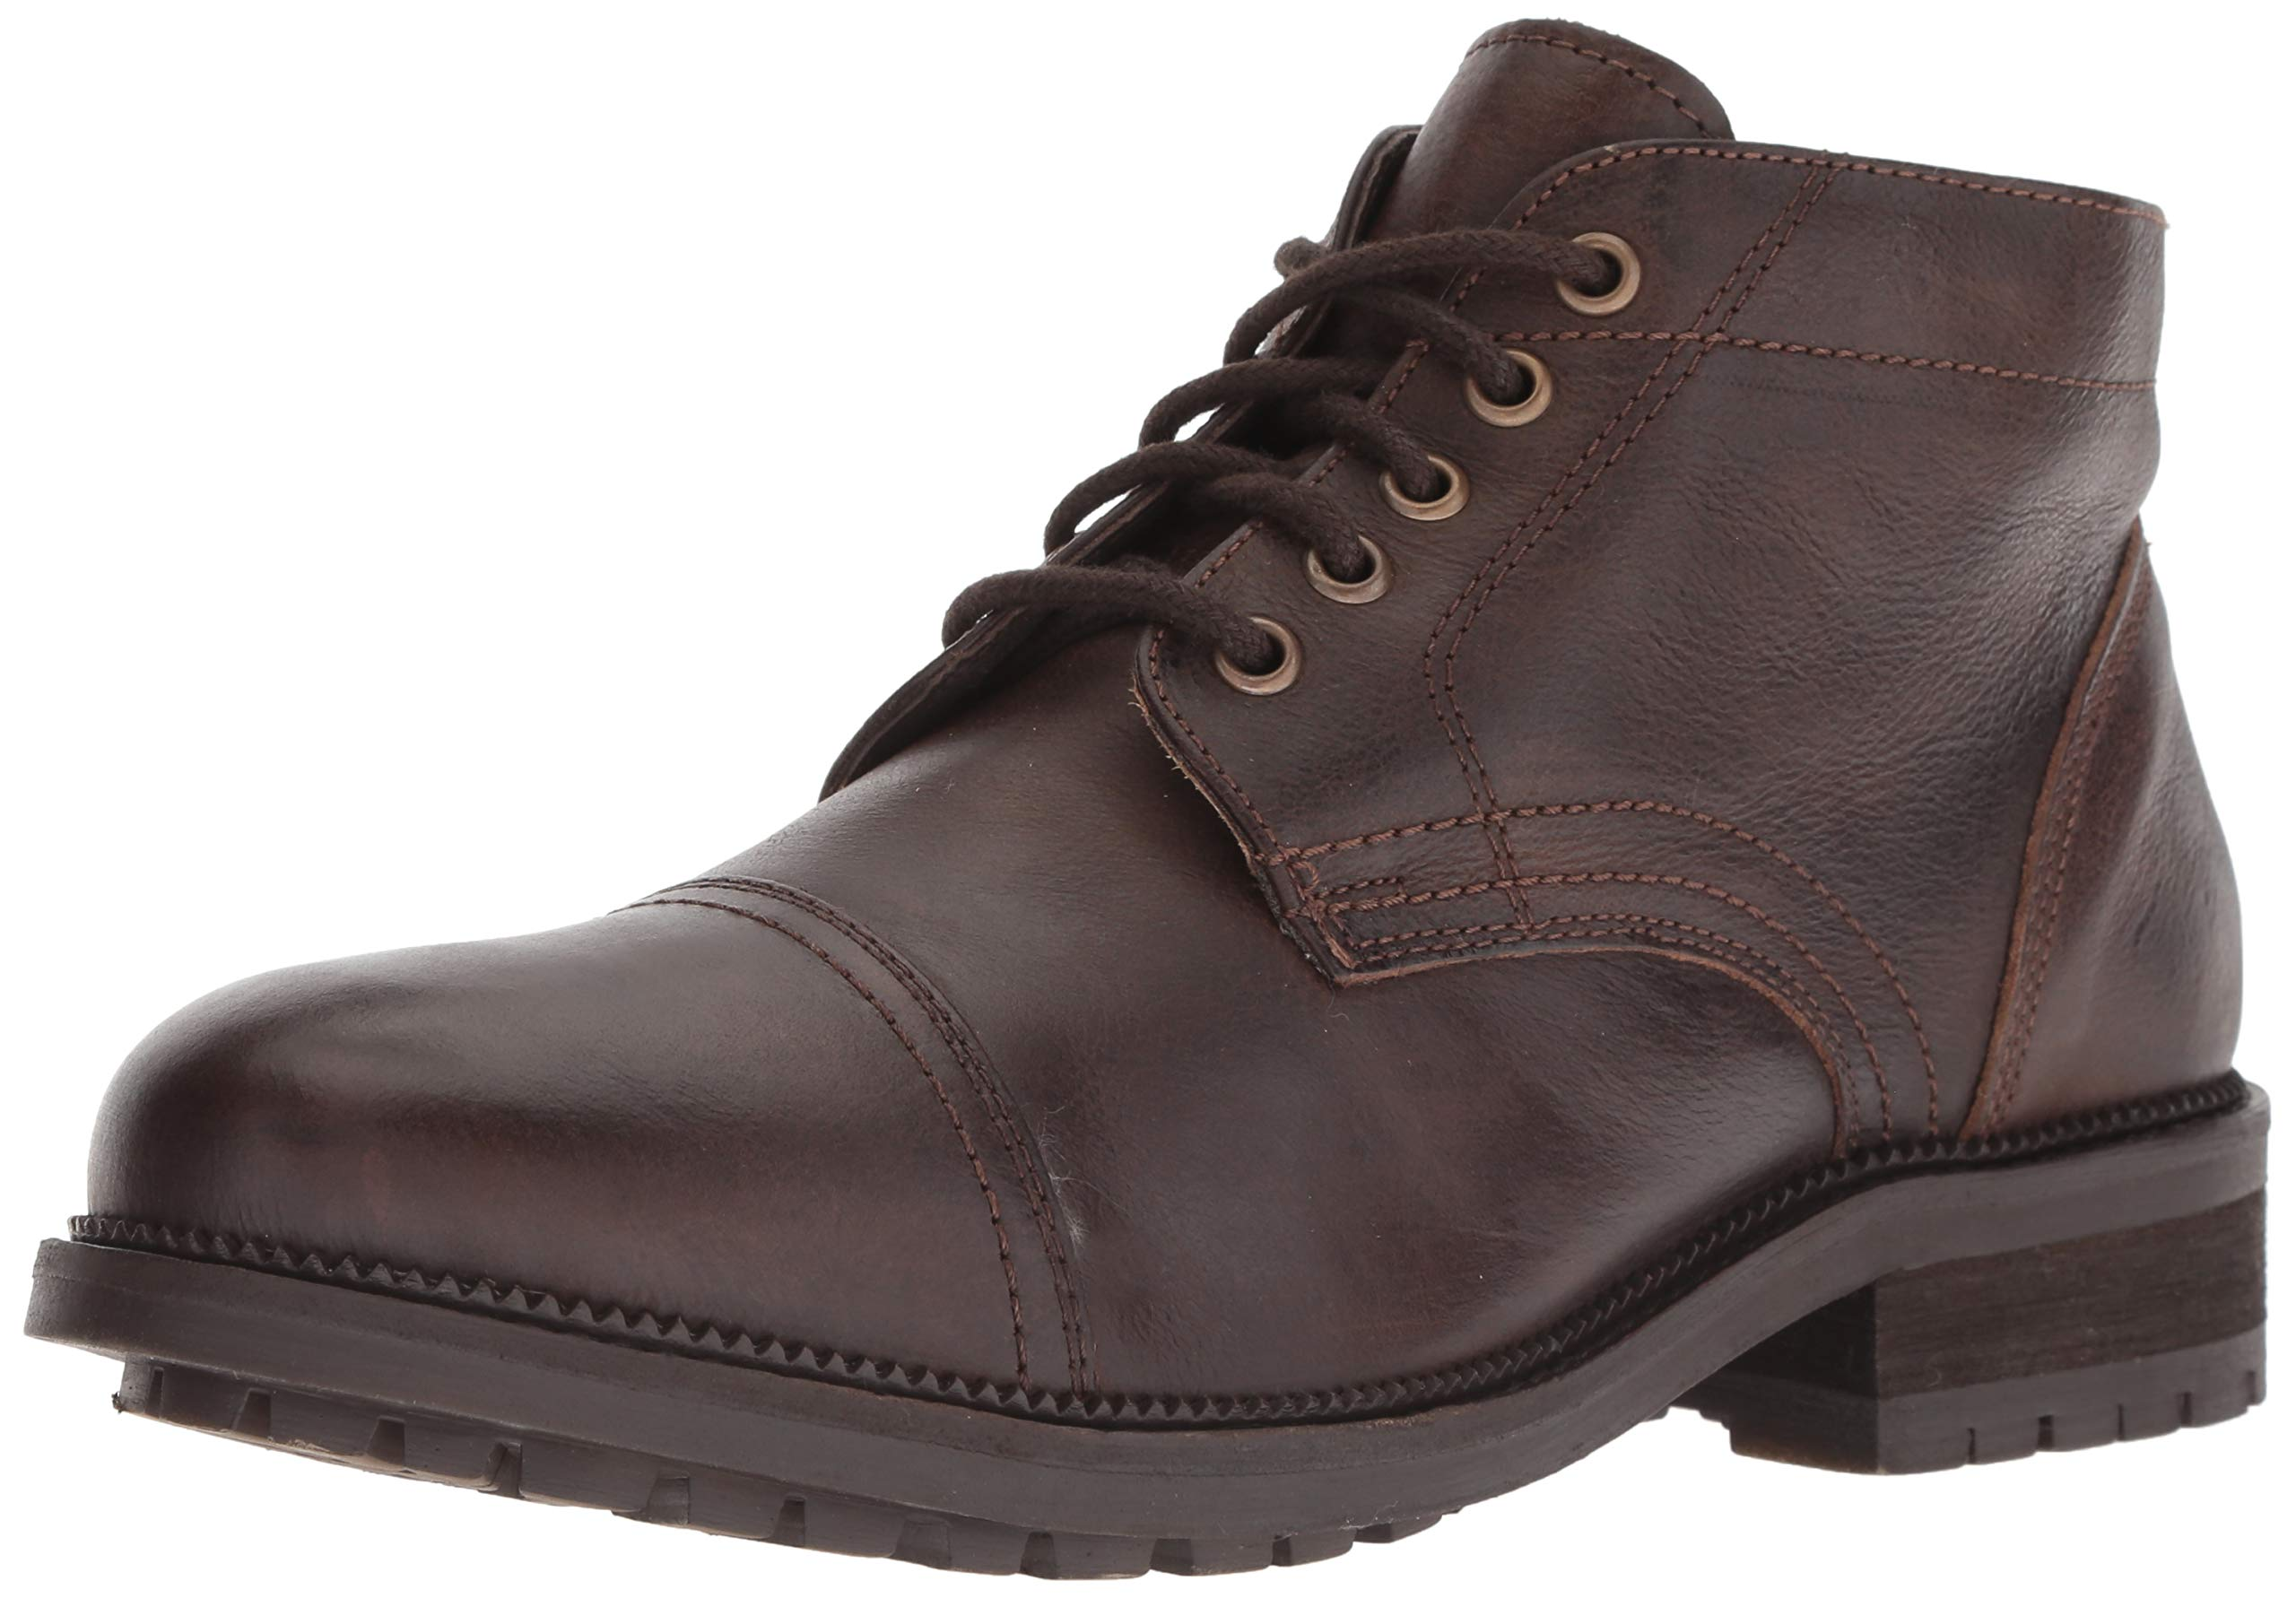 Dr. Scholl's Shoes Men's Airborne Oxford Boot, Brown Leather, 8.5 M US by Dr. Scholl's Shoes